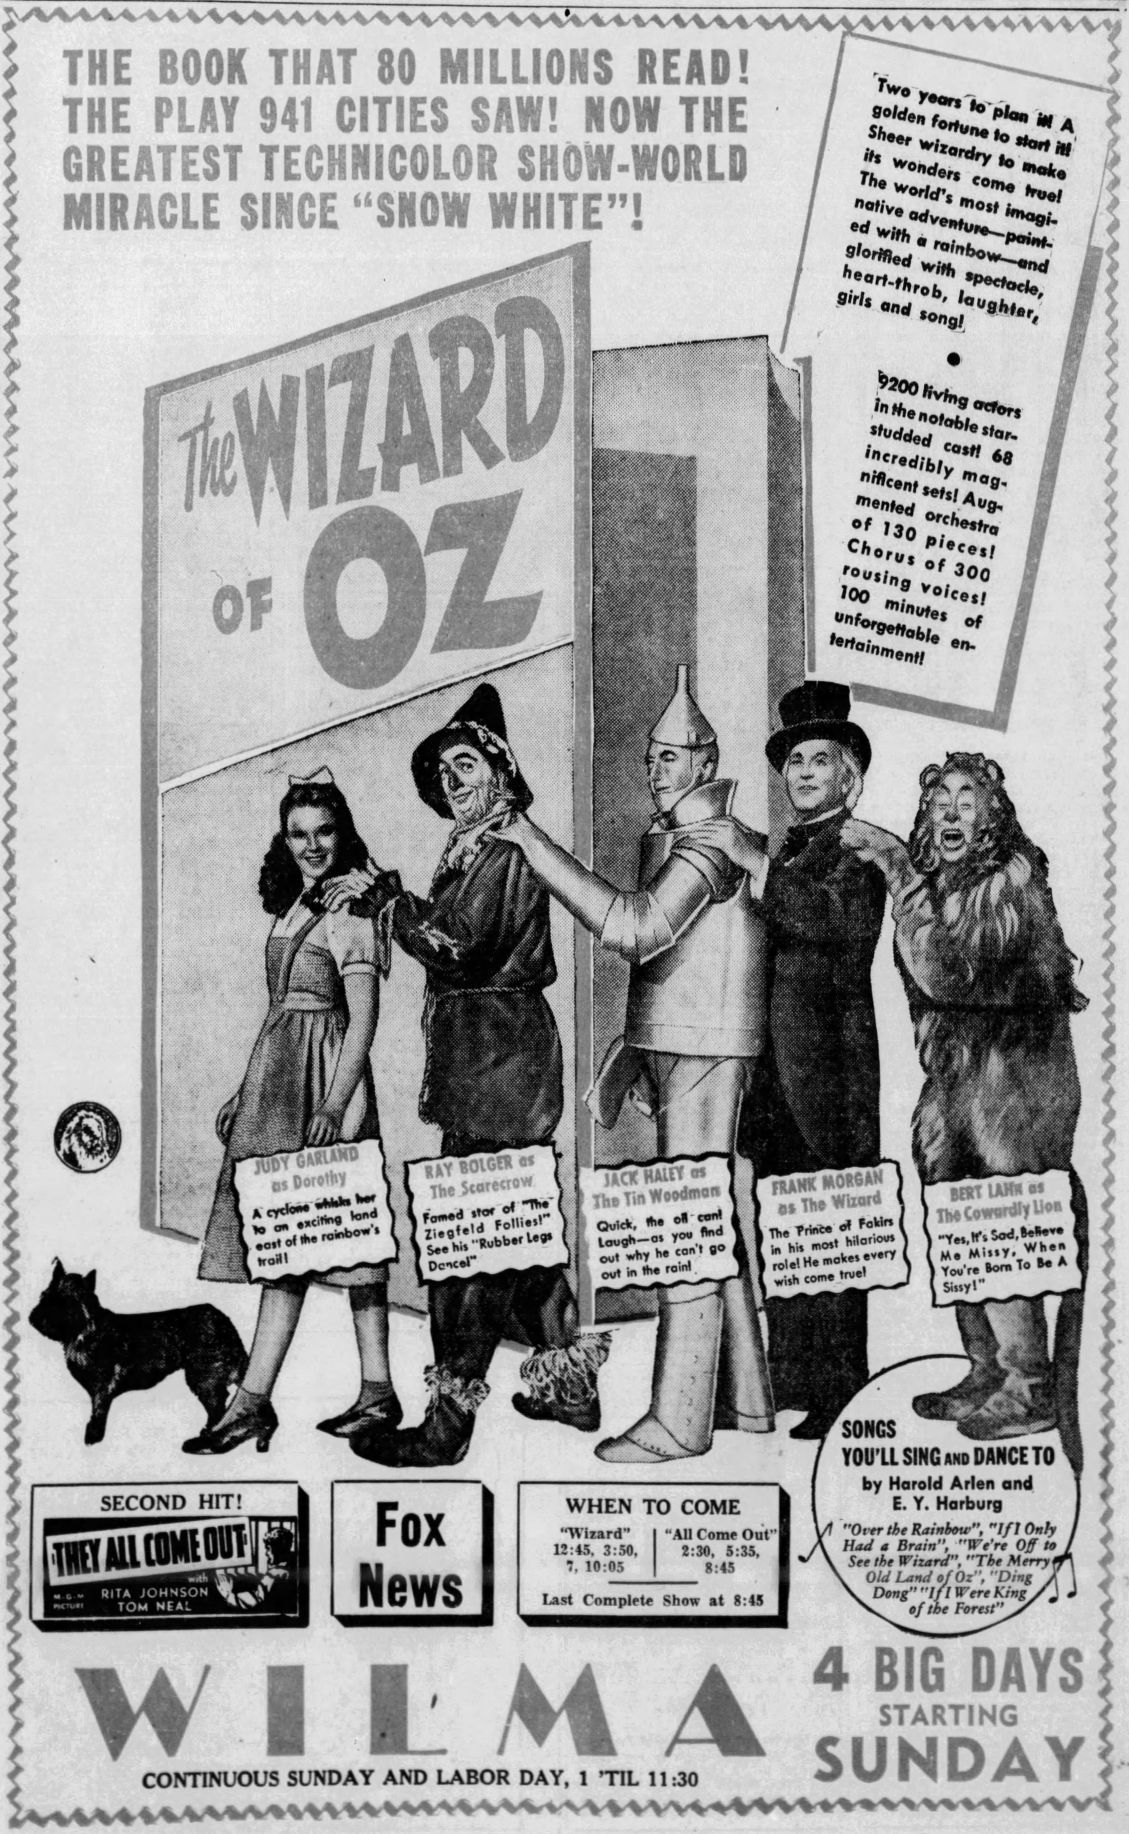 Wizard of Oz at Wilma ad